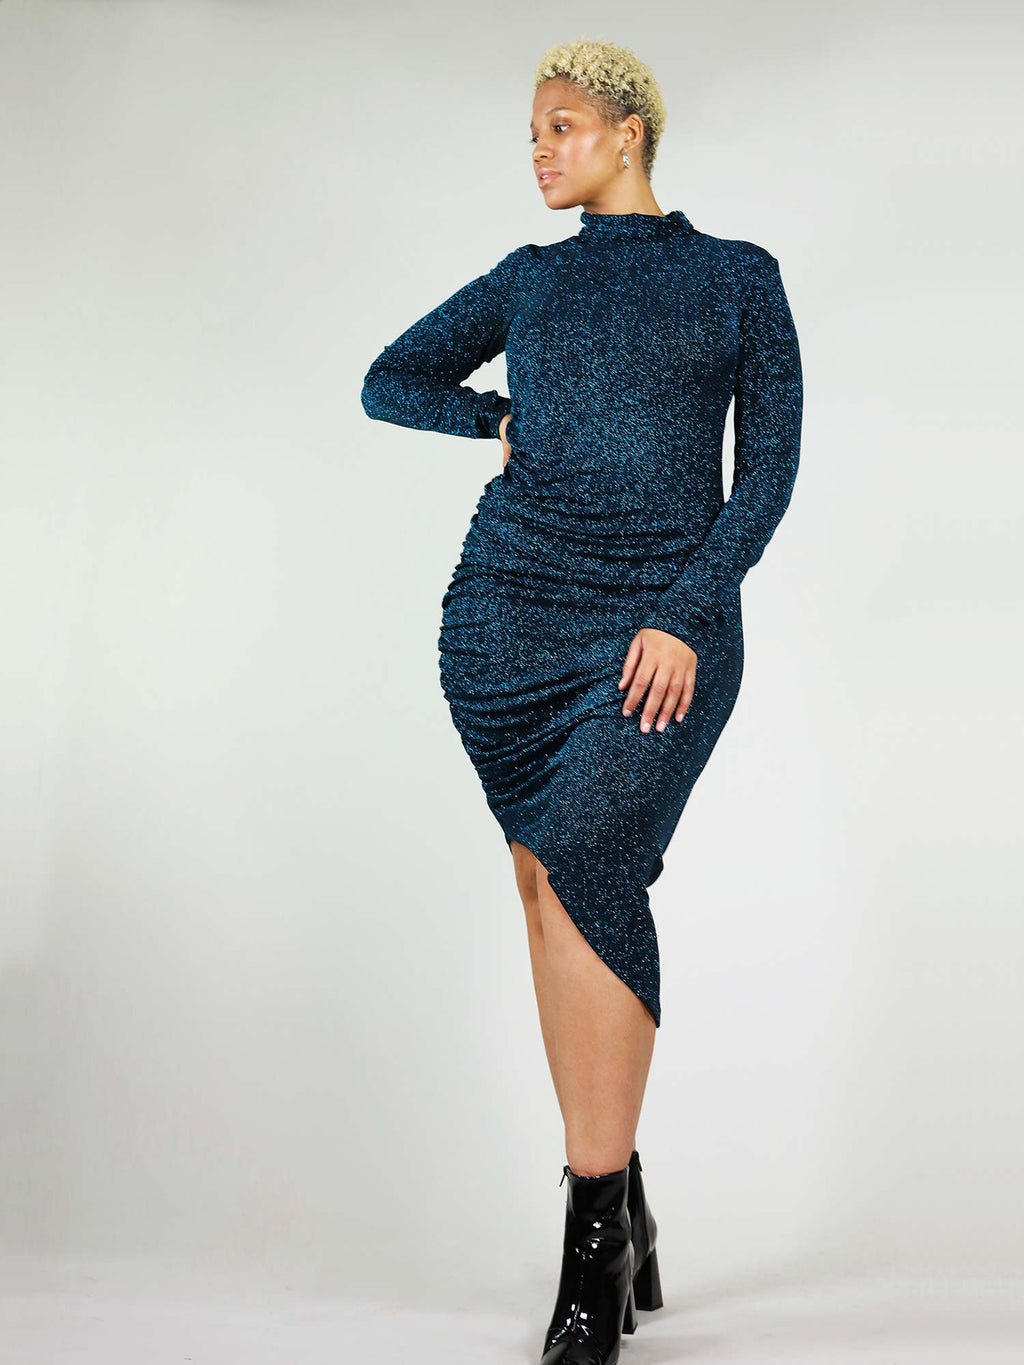 The new year's midi dress comes in sparking teal colour and is made from stretchy fabric to give you a perfect fit. It has asymmetric design that gathers on the side. Low turtleneck and long sleeves.